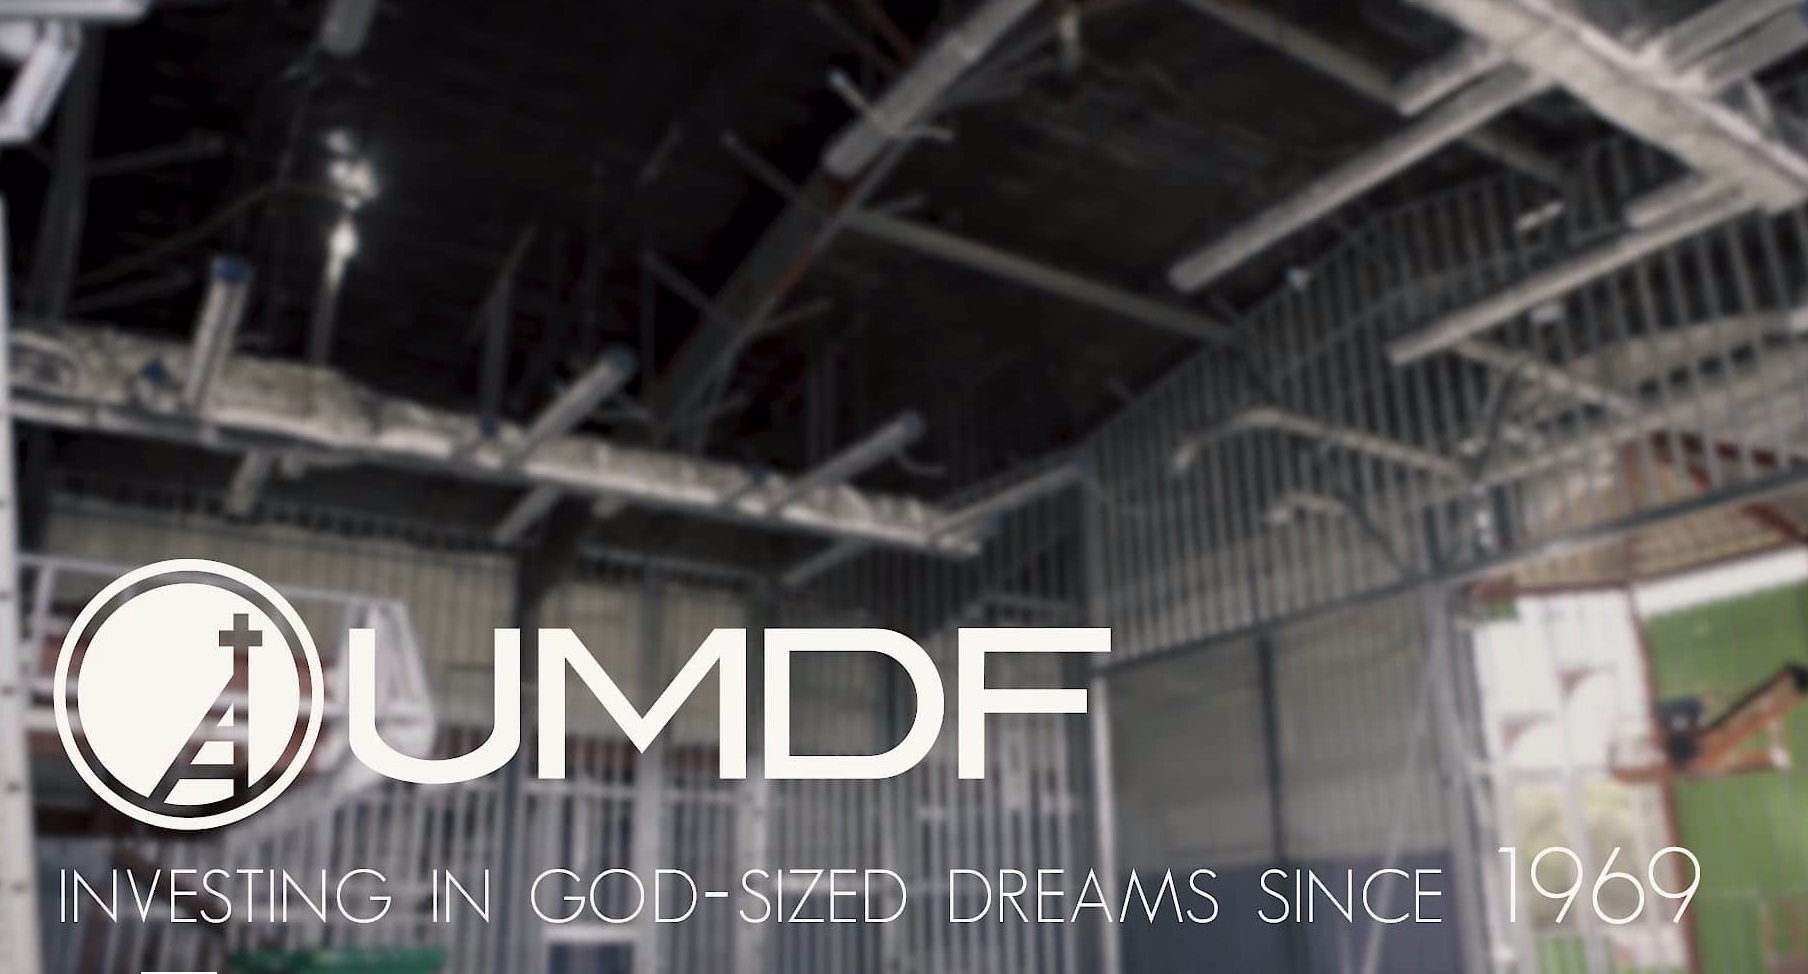 UMDF Videos - See UMDF's full video portfolio, so you can select the best option for your church or ministry.All UMDF Videos